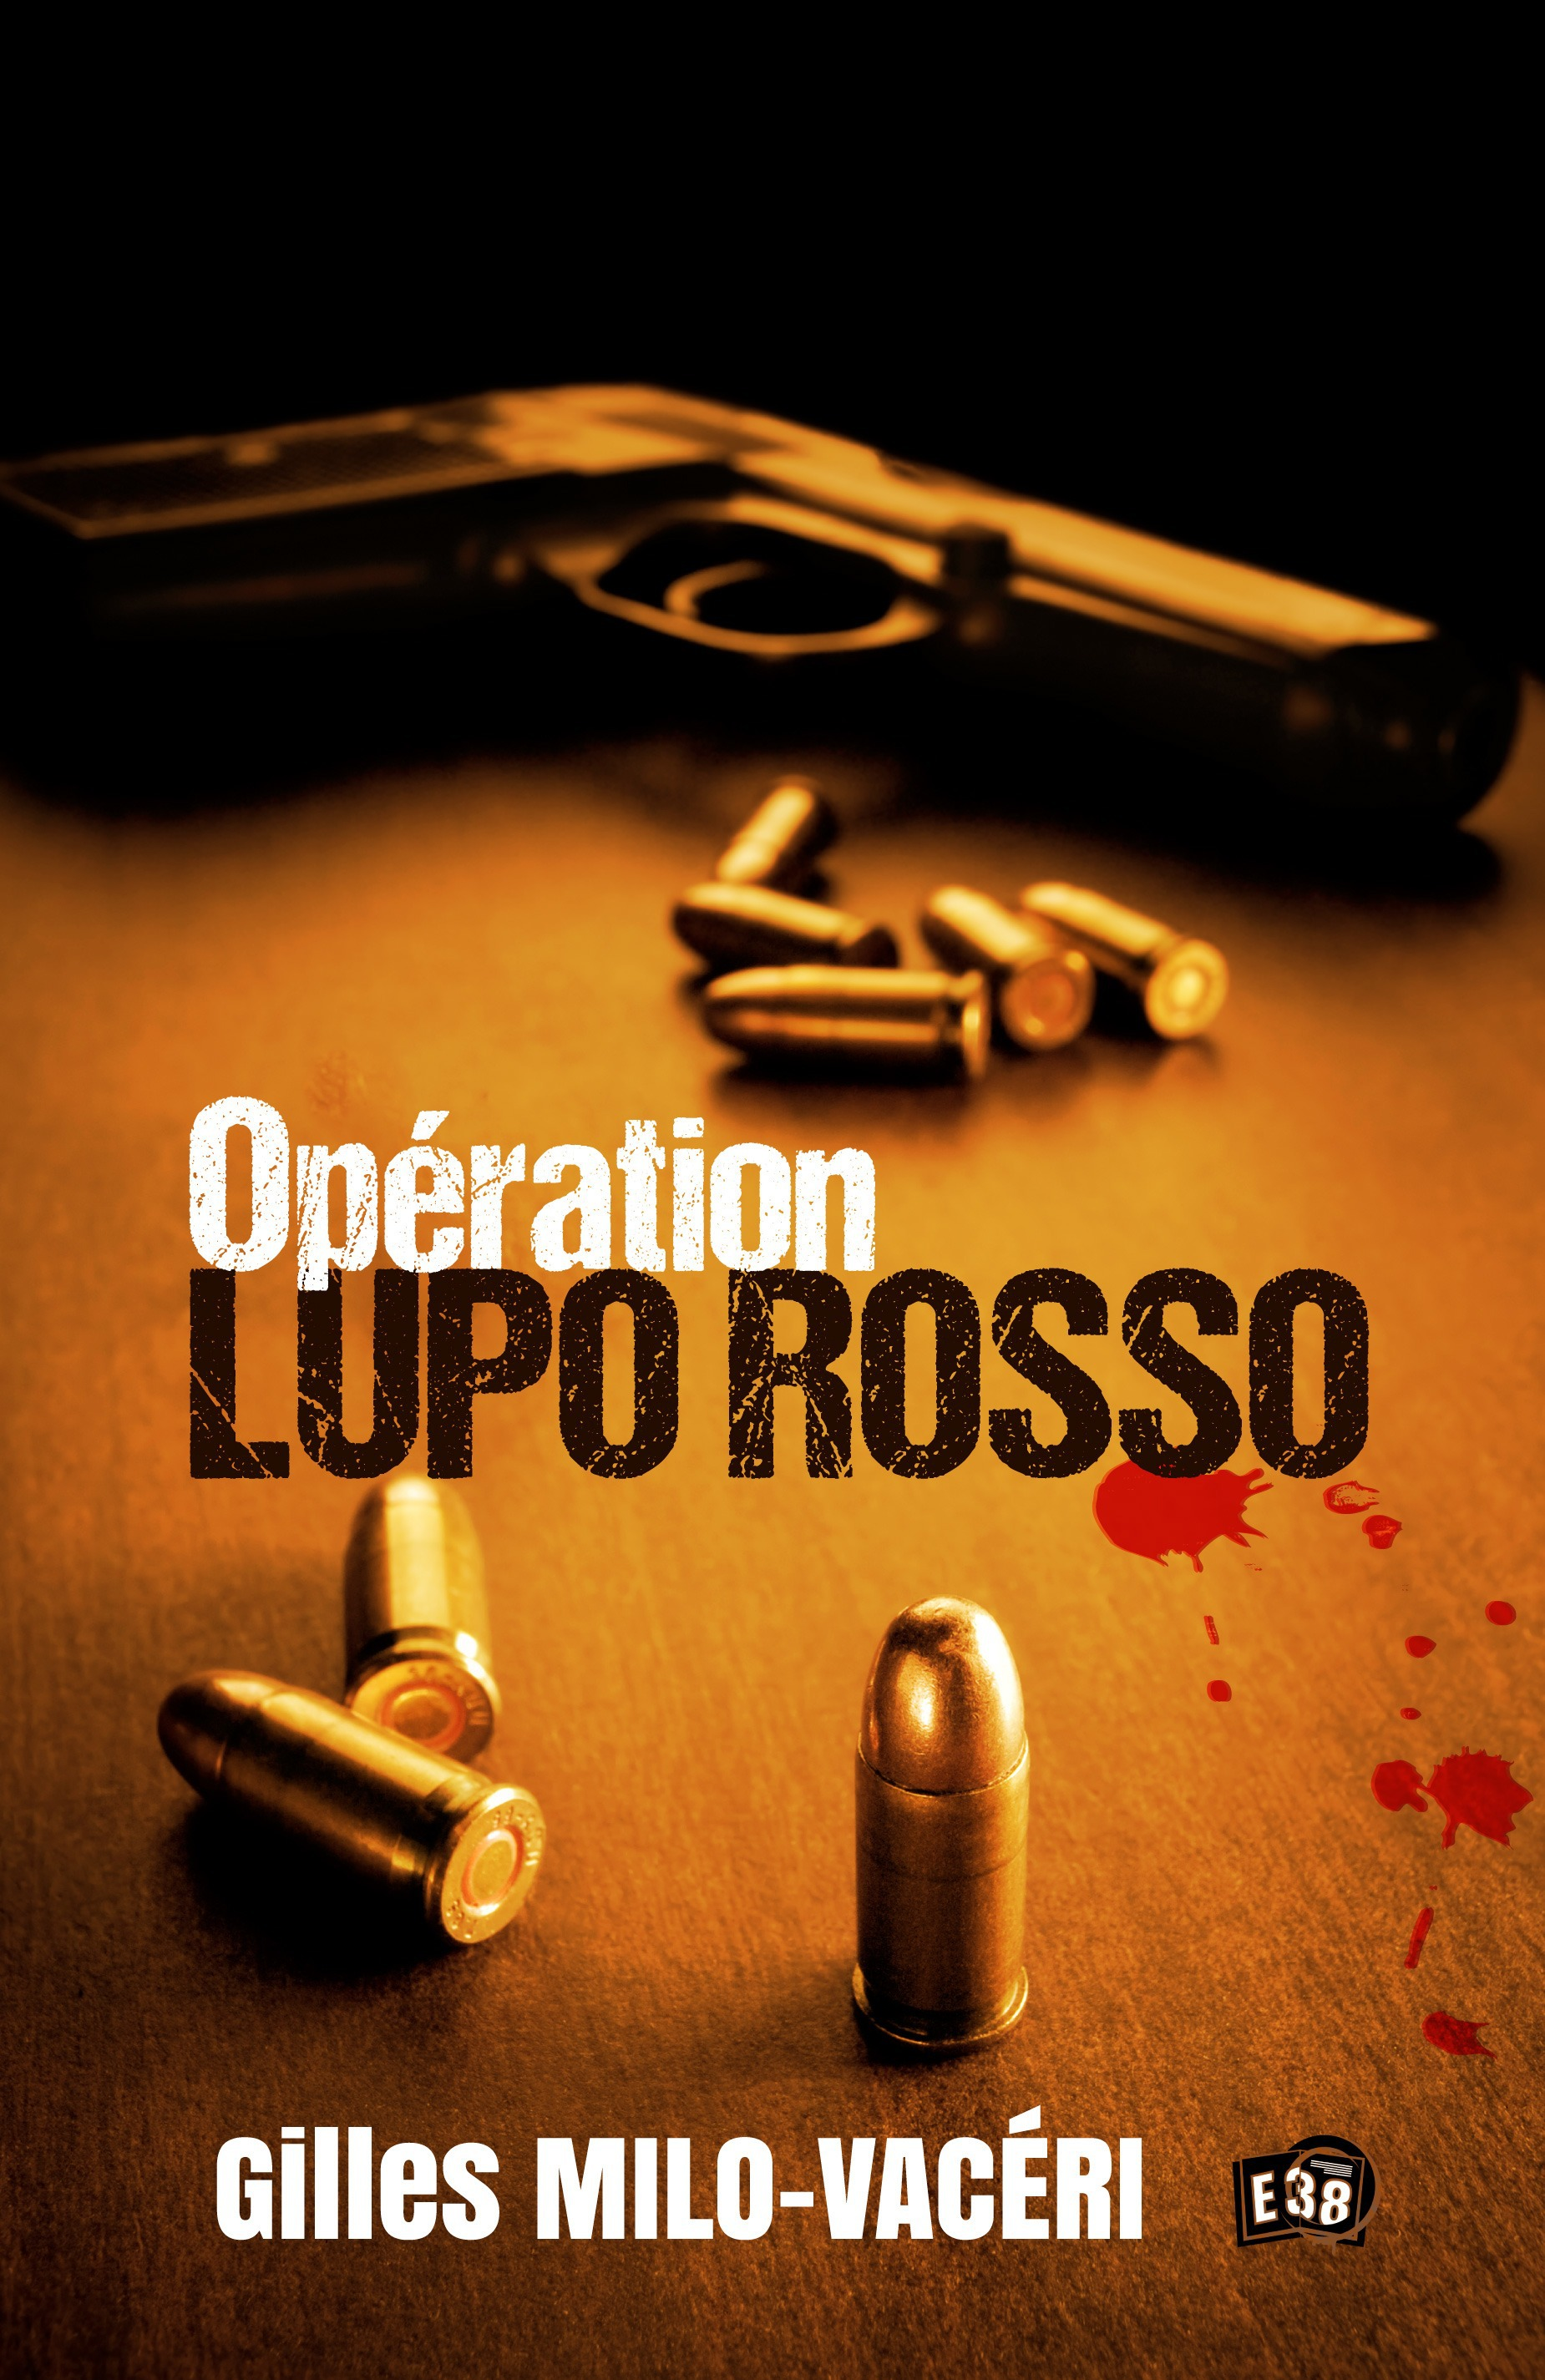 Operation lupo rosso